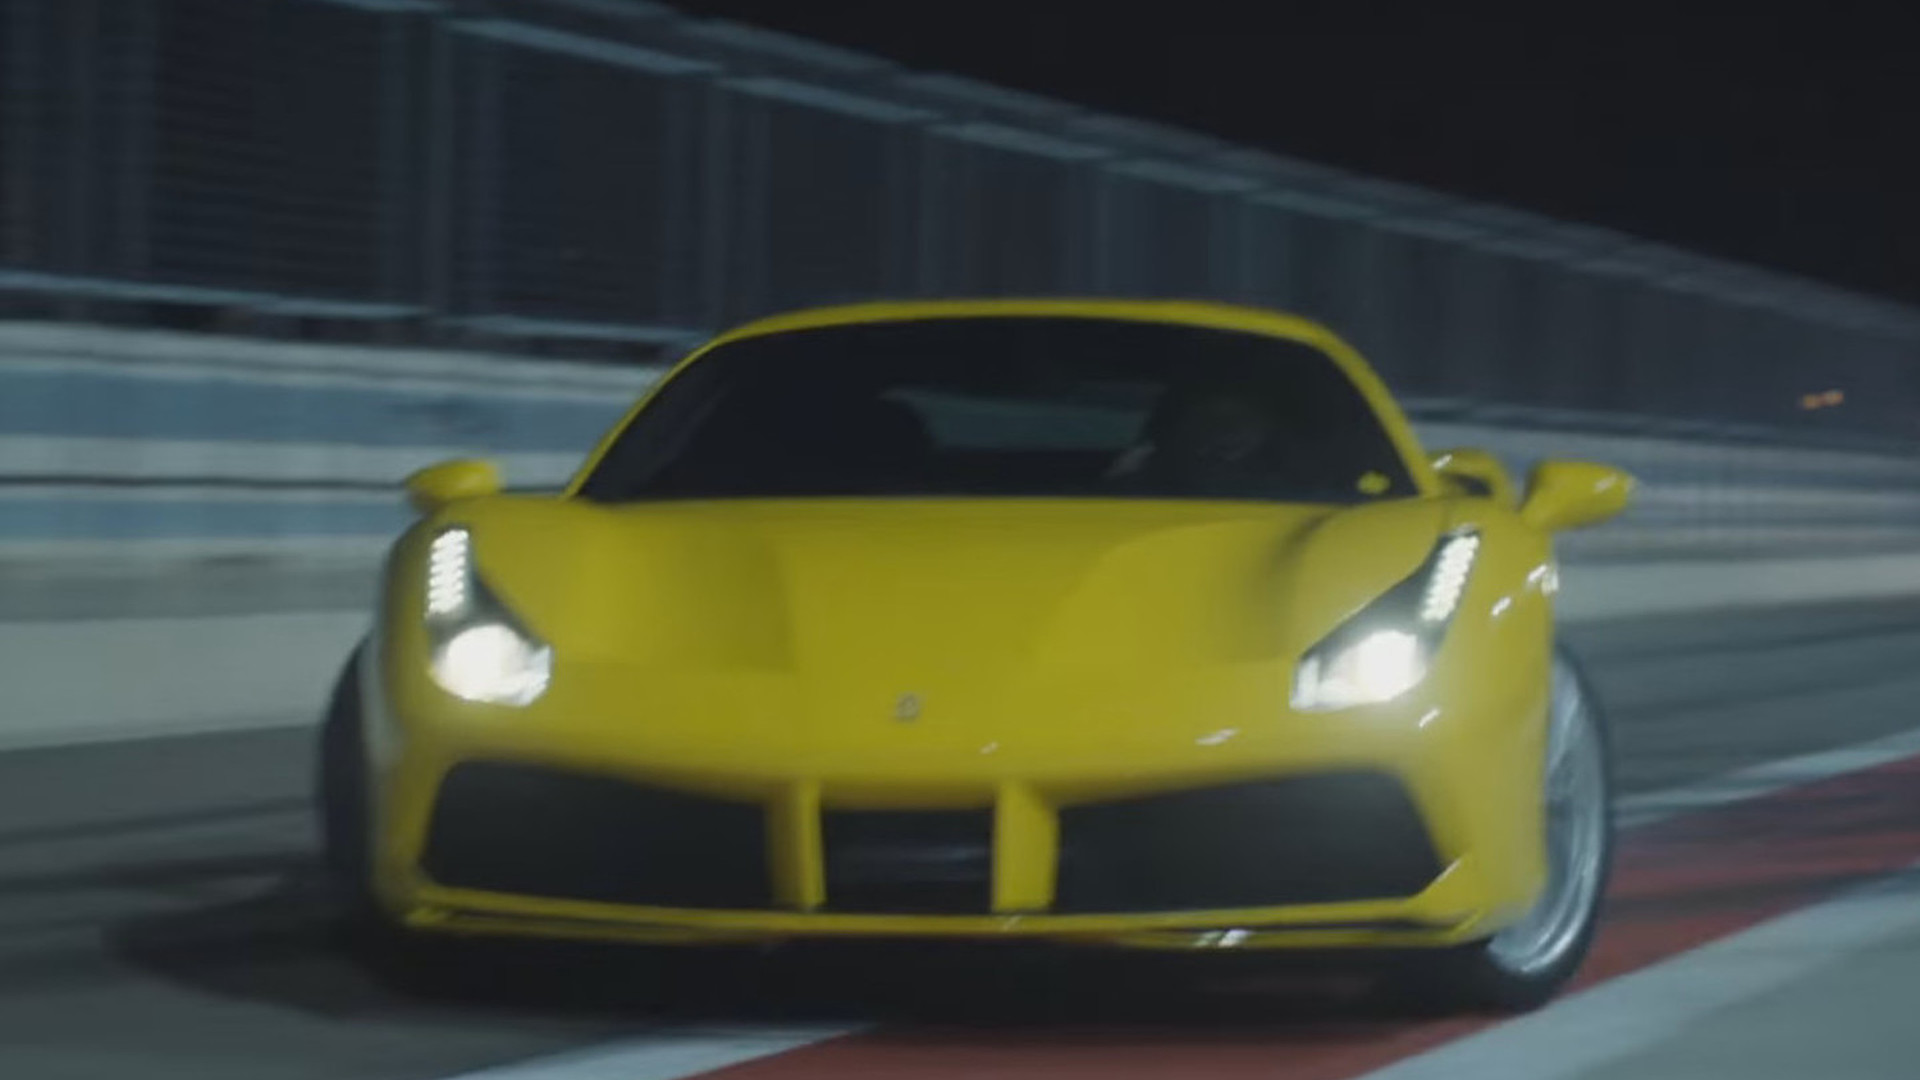 Ferrari 488 GTB hits the streets of Barcelona with Rhys Millen [video]